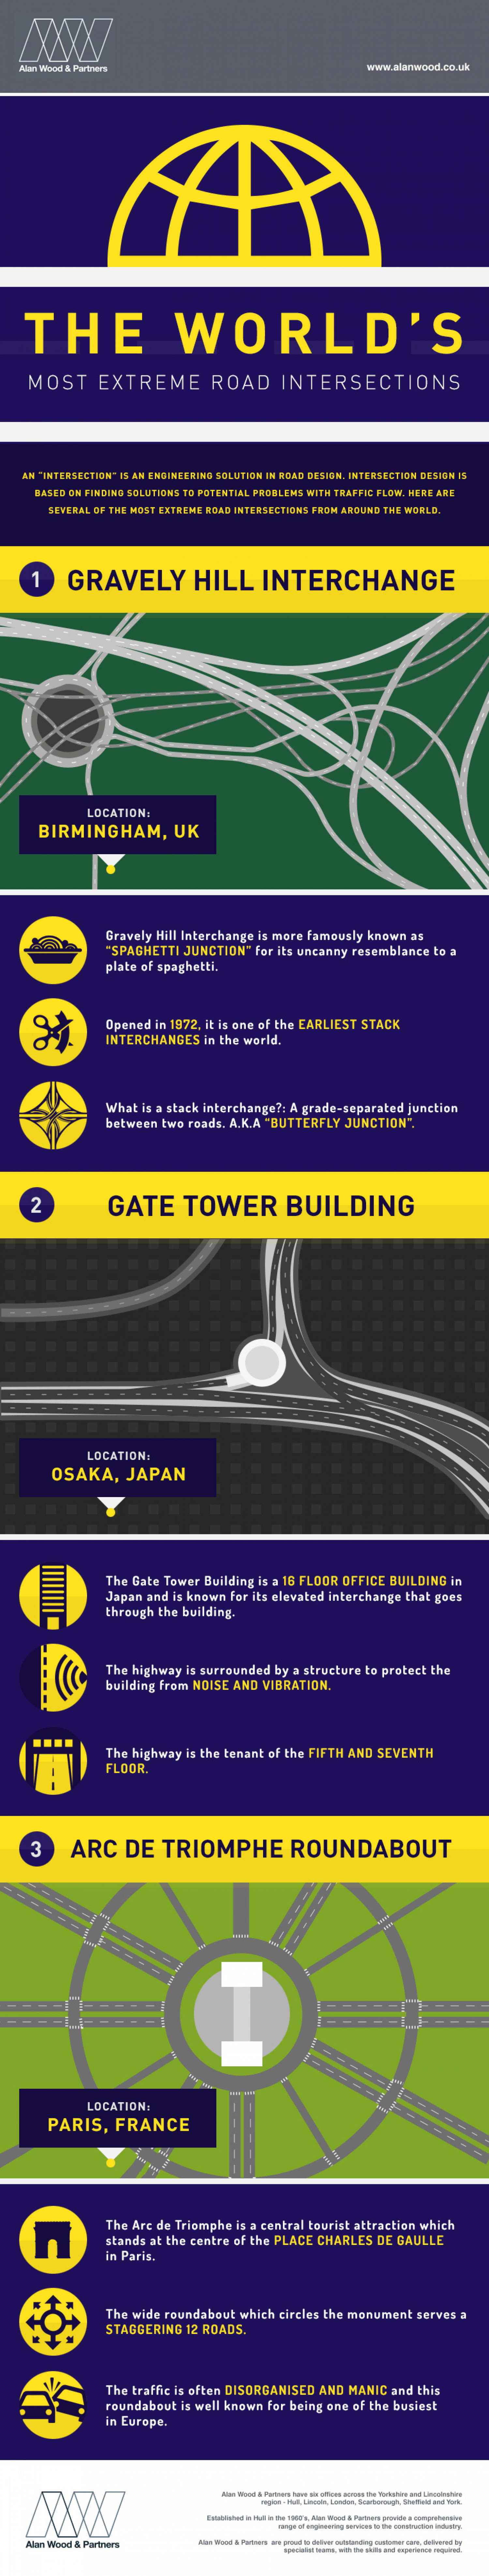 The World's Most Extreme Road Intersections Infographic